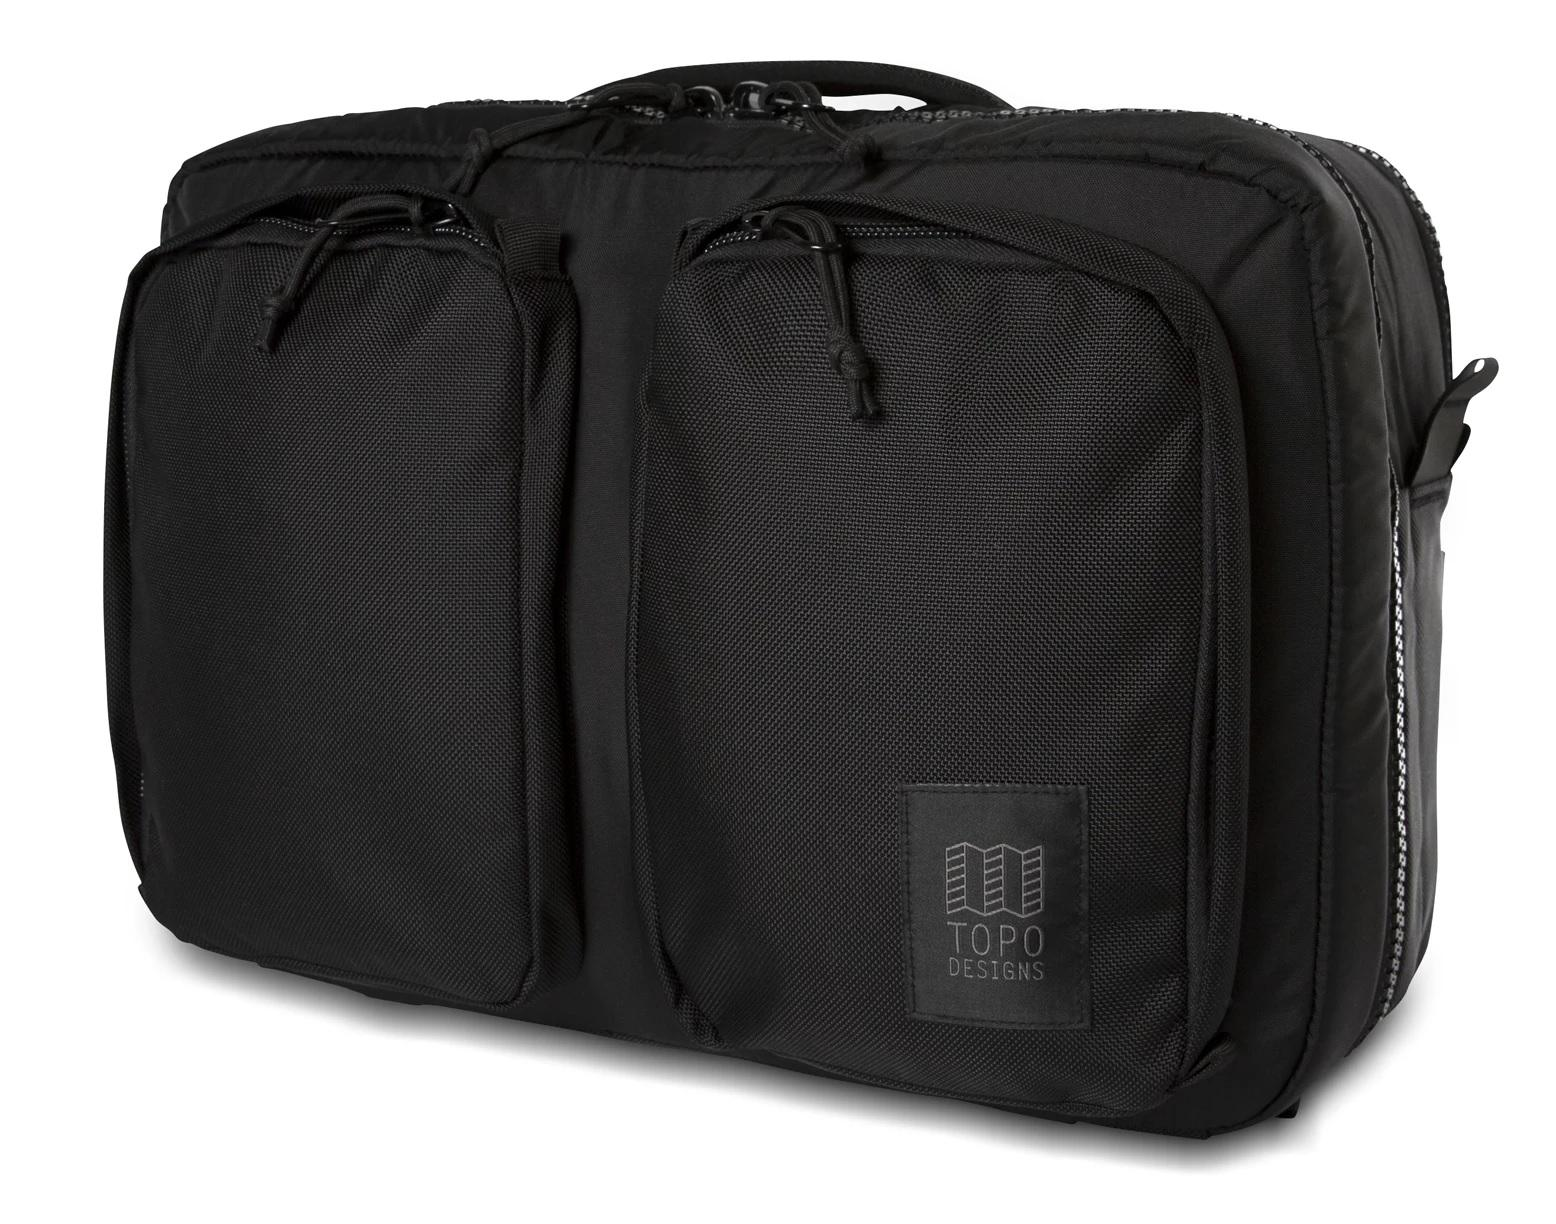 TOPO DESIGNS GLOBAL BRIEFCASE 3-DAY